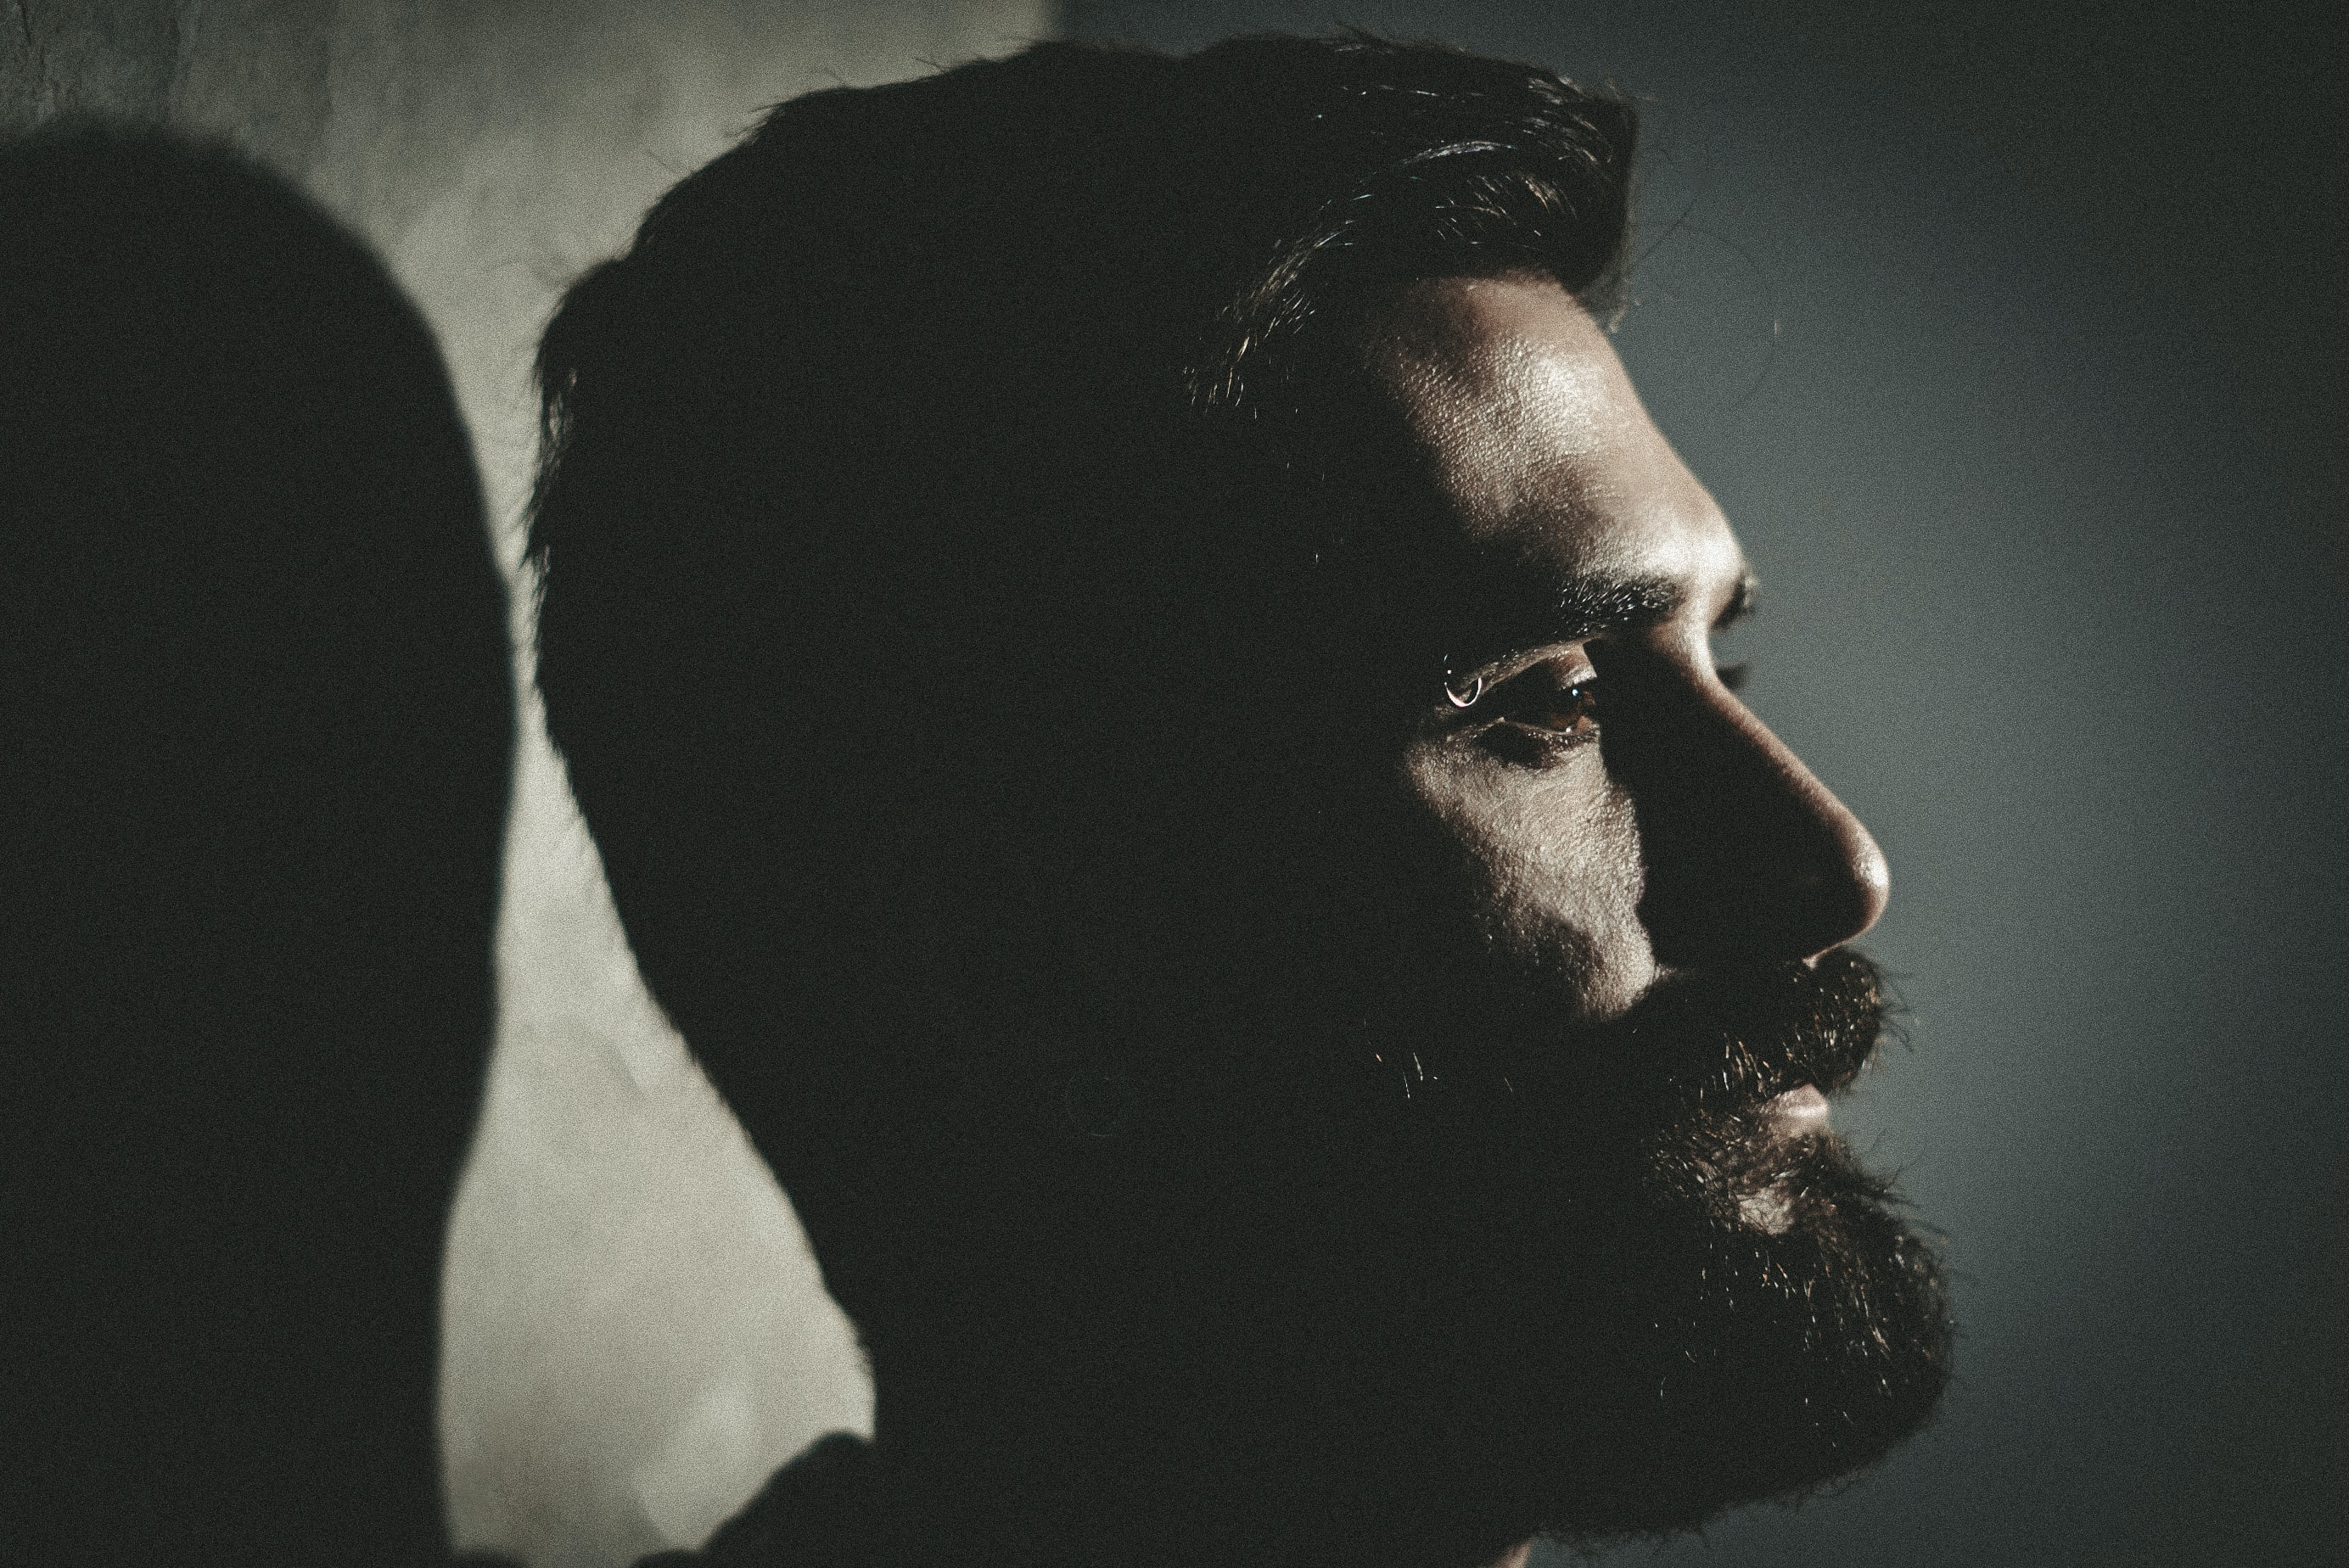 A close-up bearded man with a serious expression casts a shadow